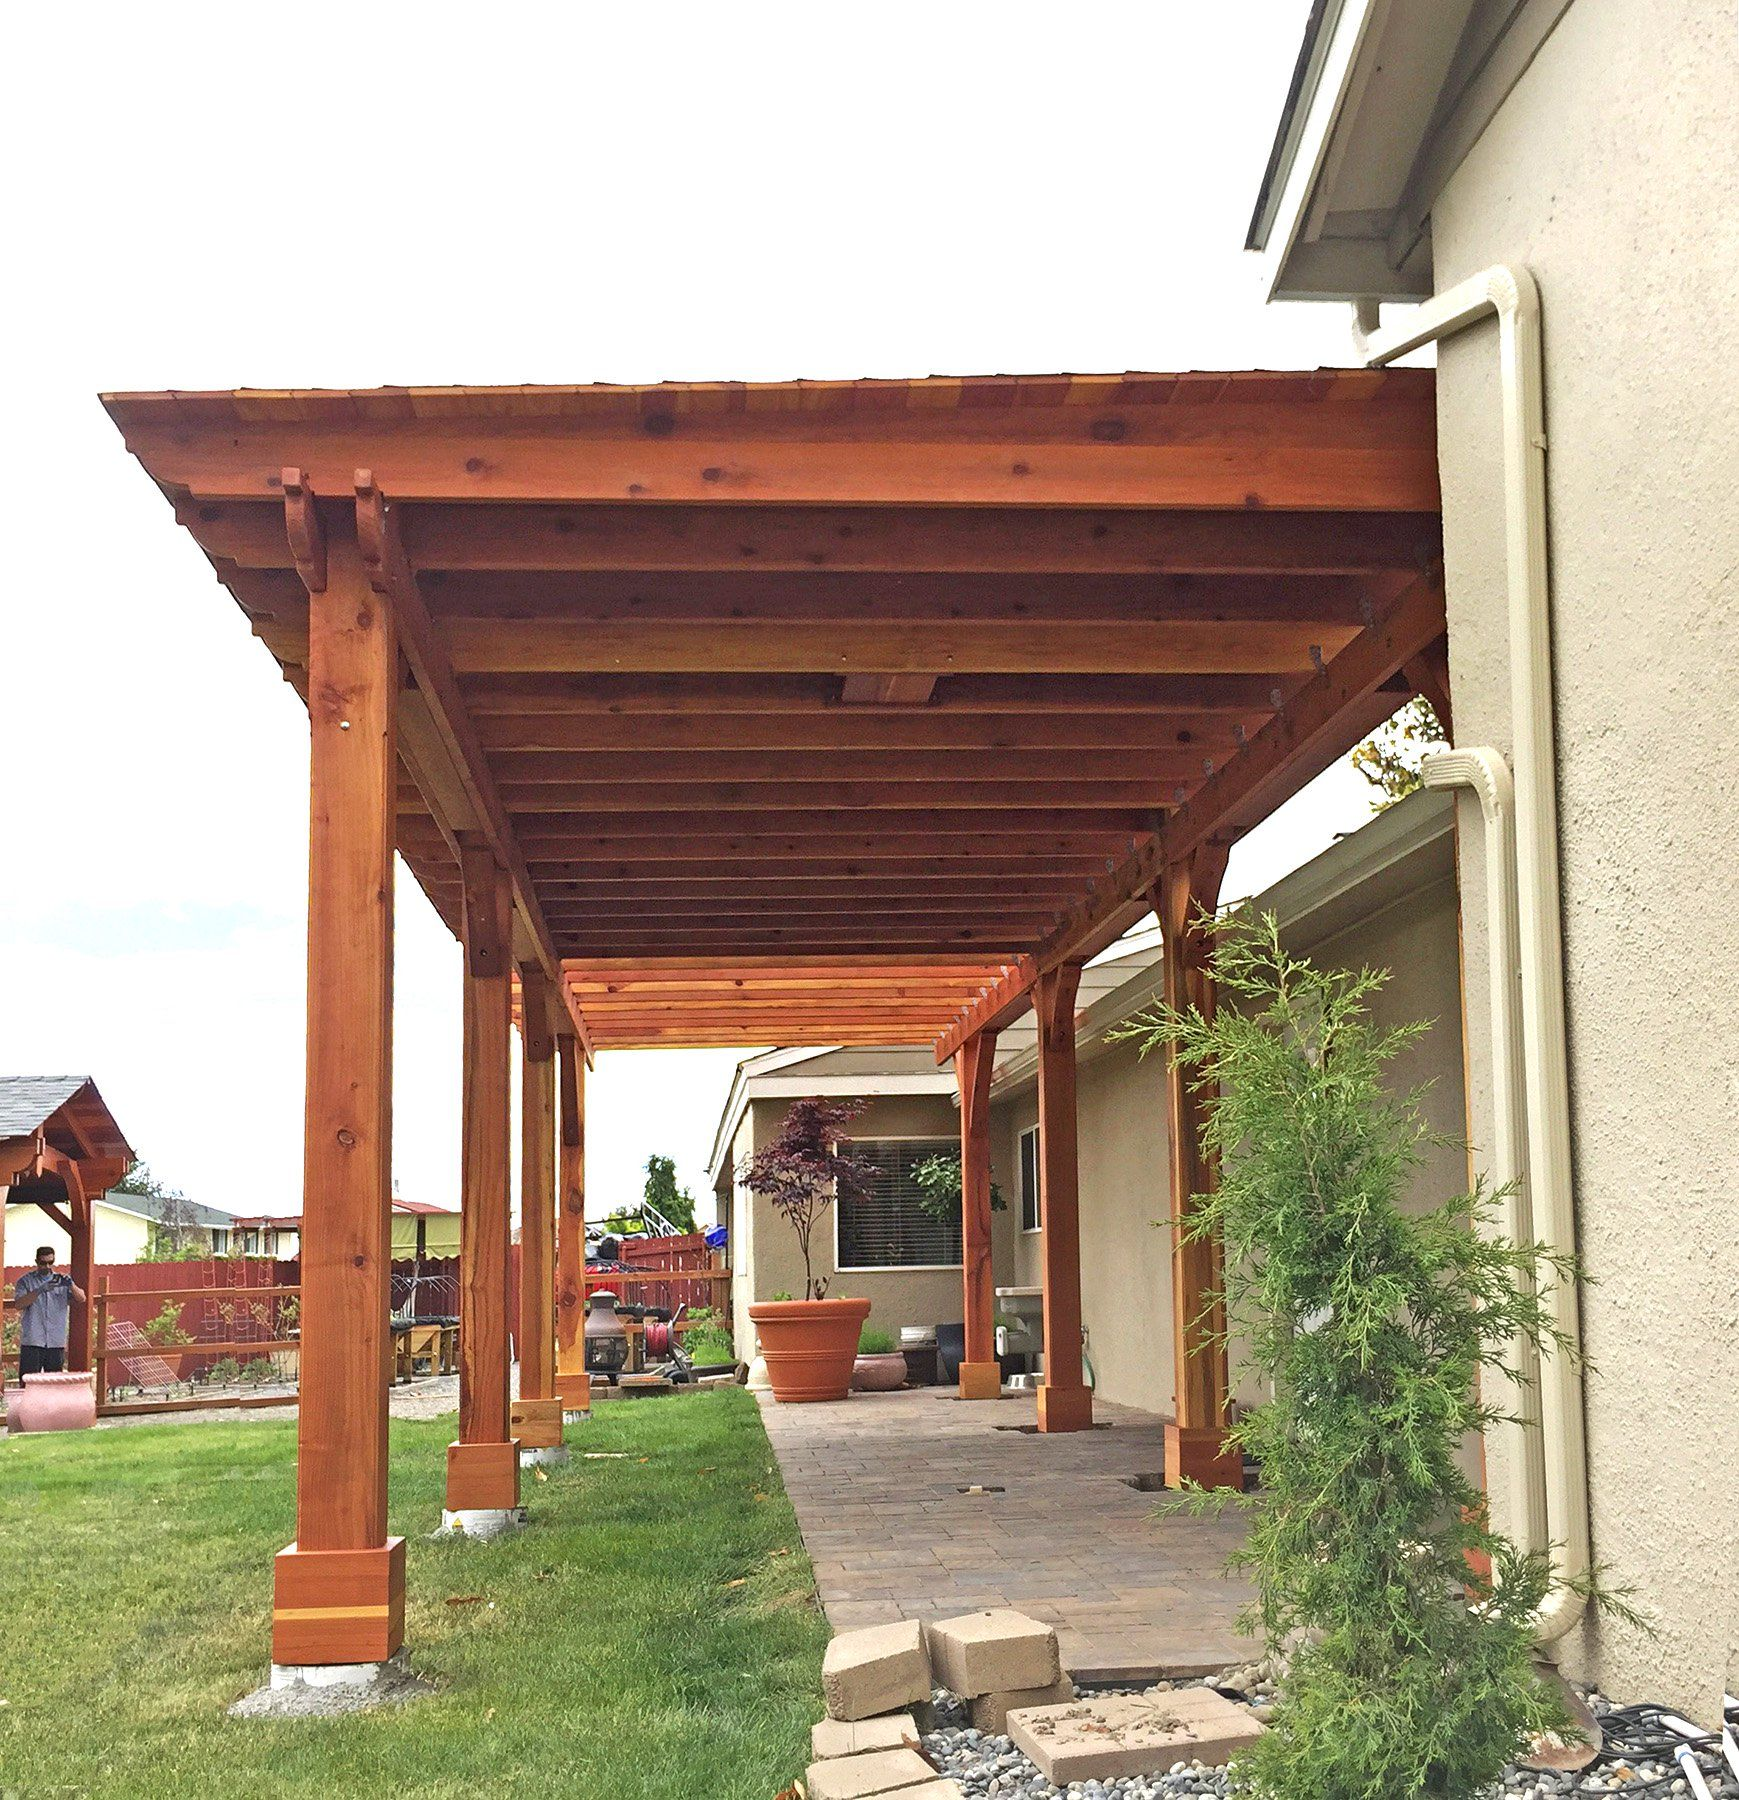 medium resolution of custom shed pavilion options 12 x 24 redwood one ceiling fan base electrical wiring trim kit for 1 post gale wind anchors for 8 posts